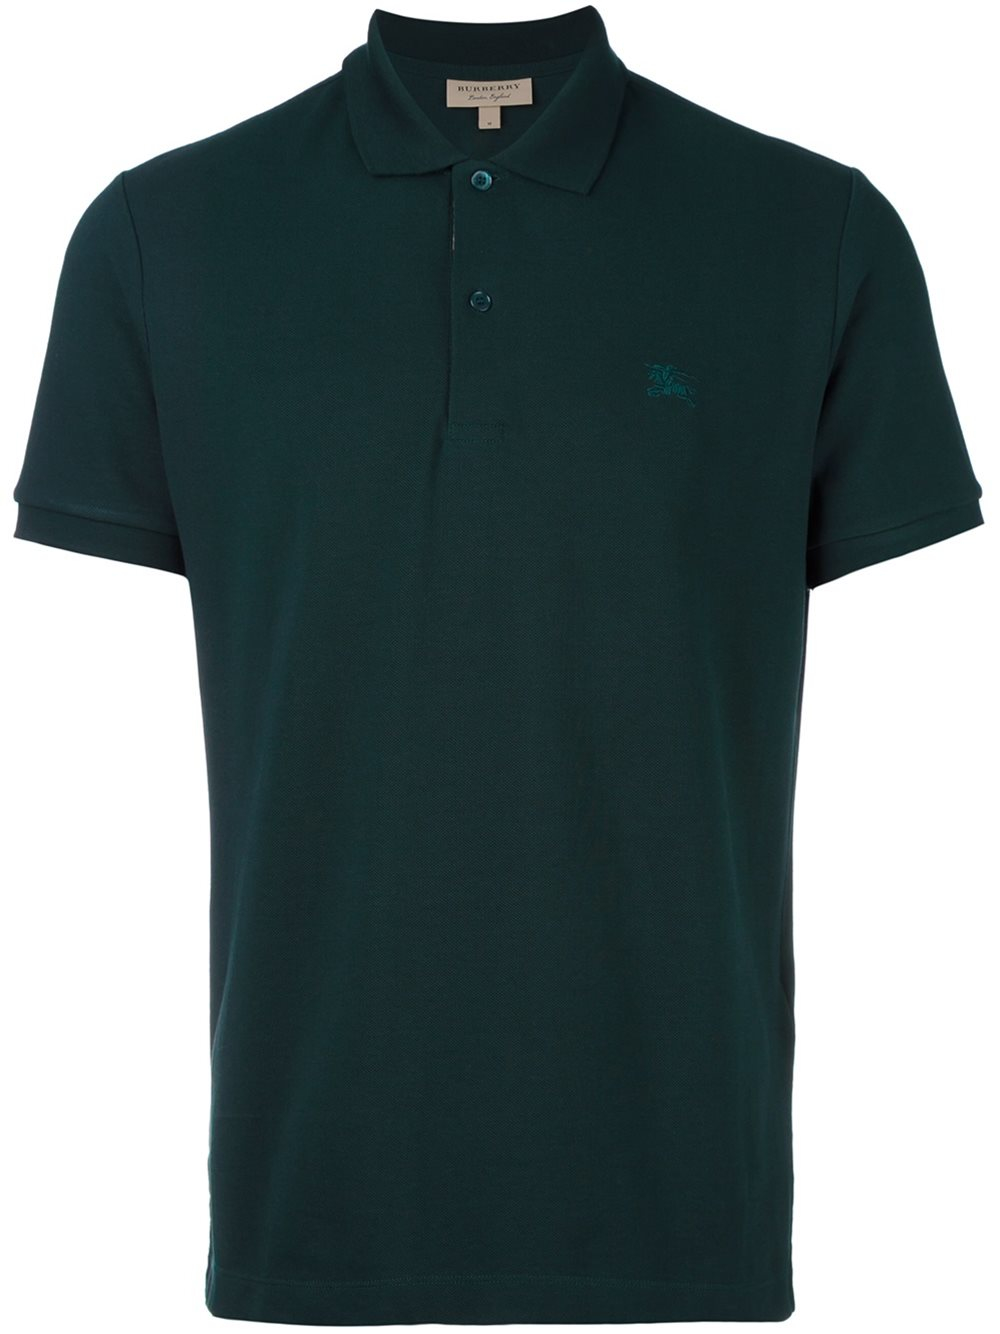 Shop men's polos at mediabroadqc.cf Discover a stylish selection of the latest brand name and designer fashions all at a great value.